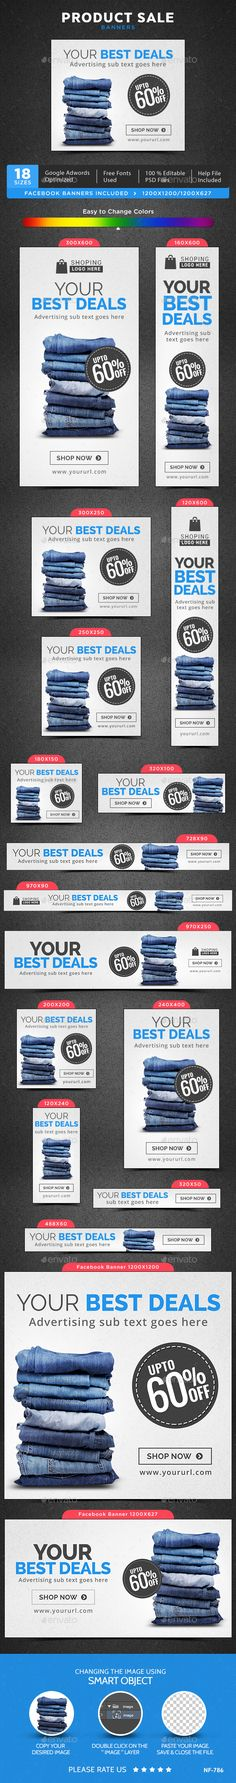 Product Sale Web Banners Template PSD #design #ads Download: http://graphicriver.net/item/product-sale-banners/13496386?ref=ksioks